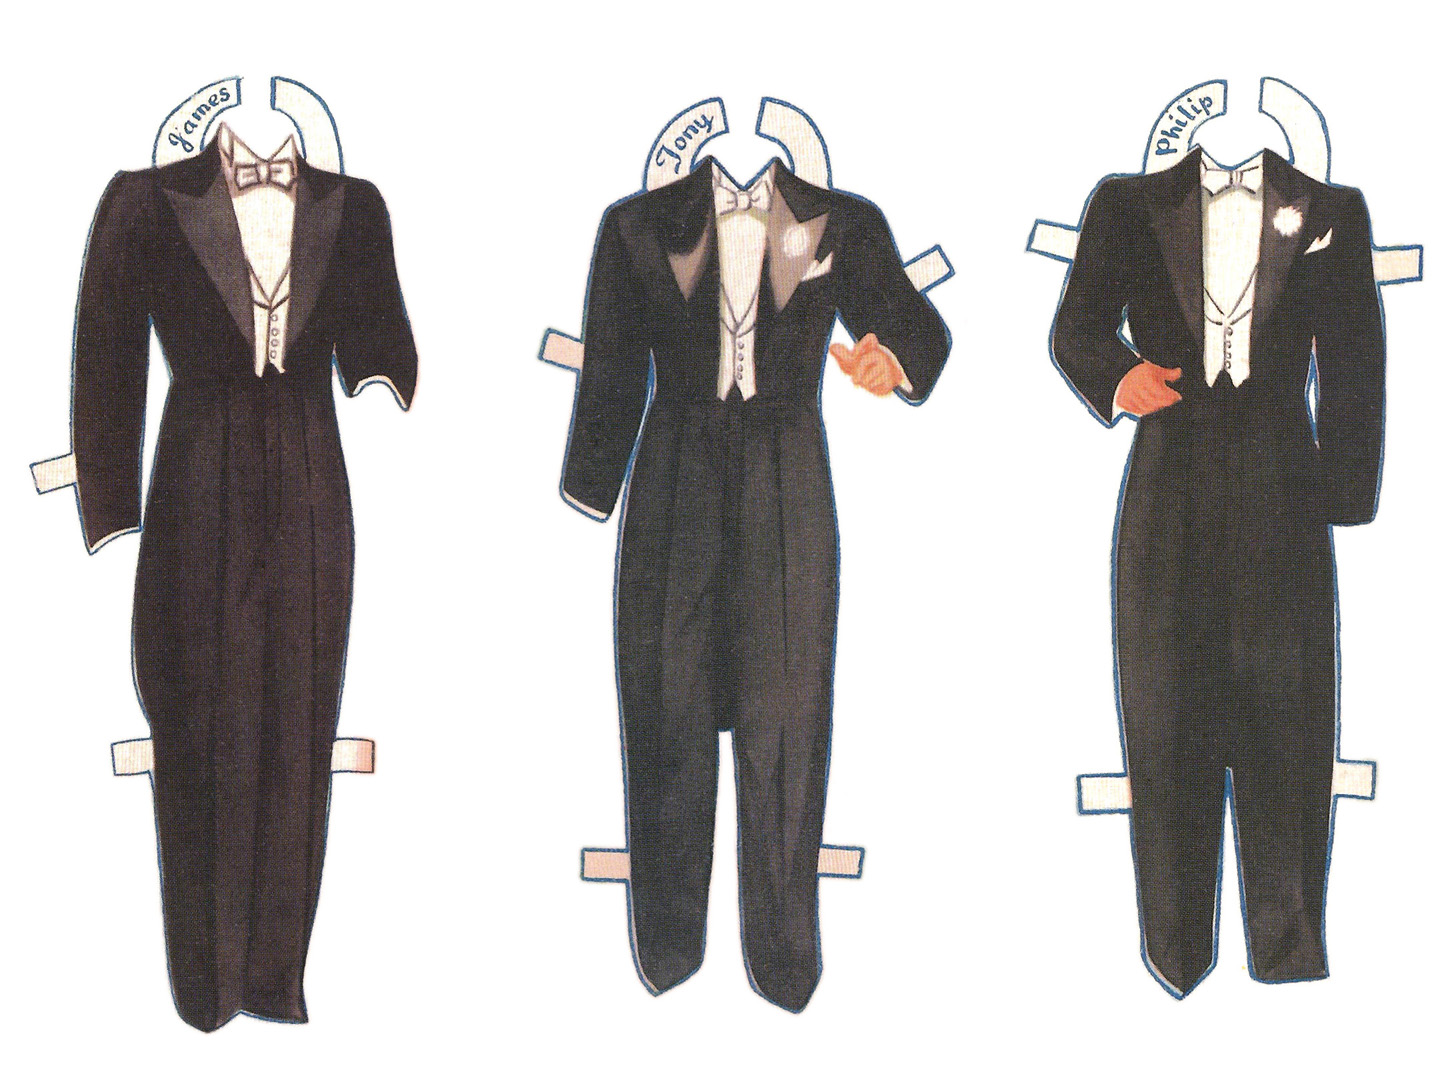 writers inner voices paper dolls